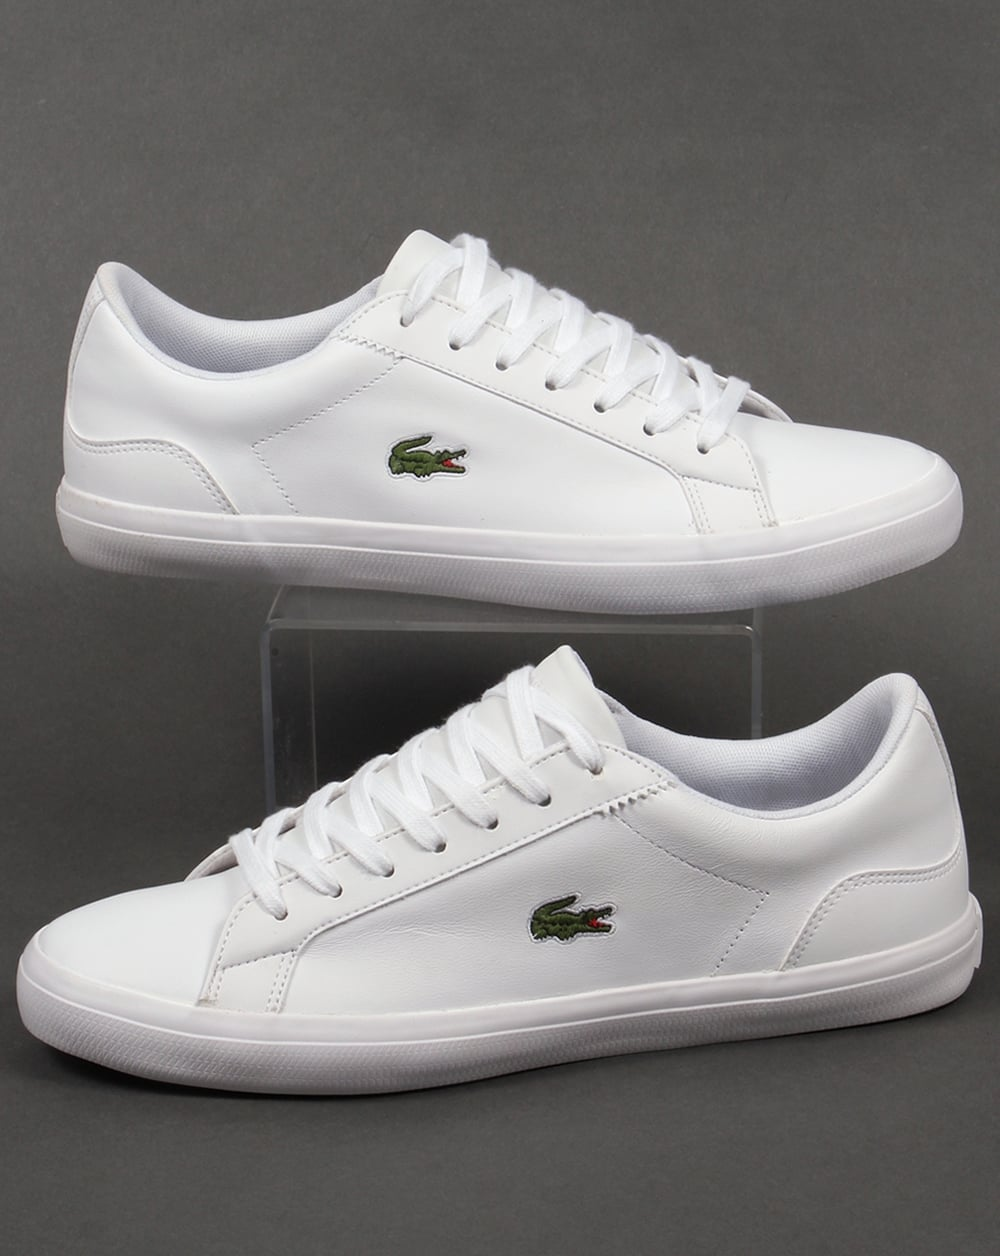 shoes for cheap great deals 2017 better Lacoste Lerond Leather Trainers White   80s casual classics